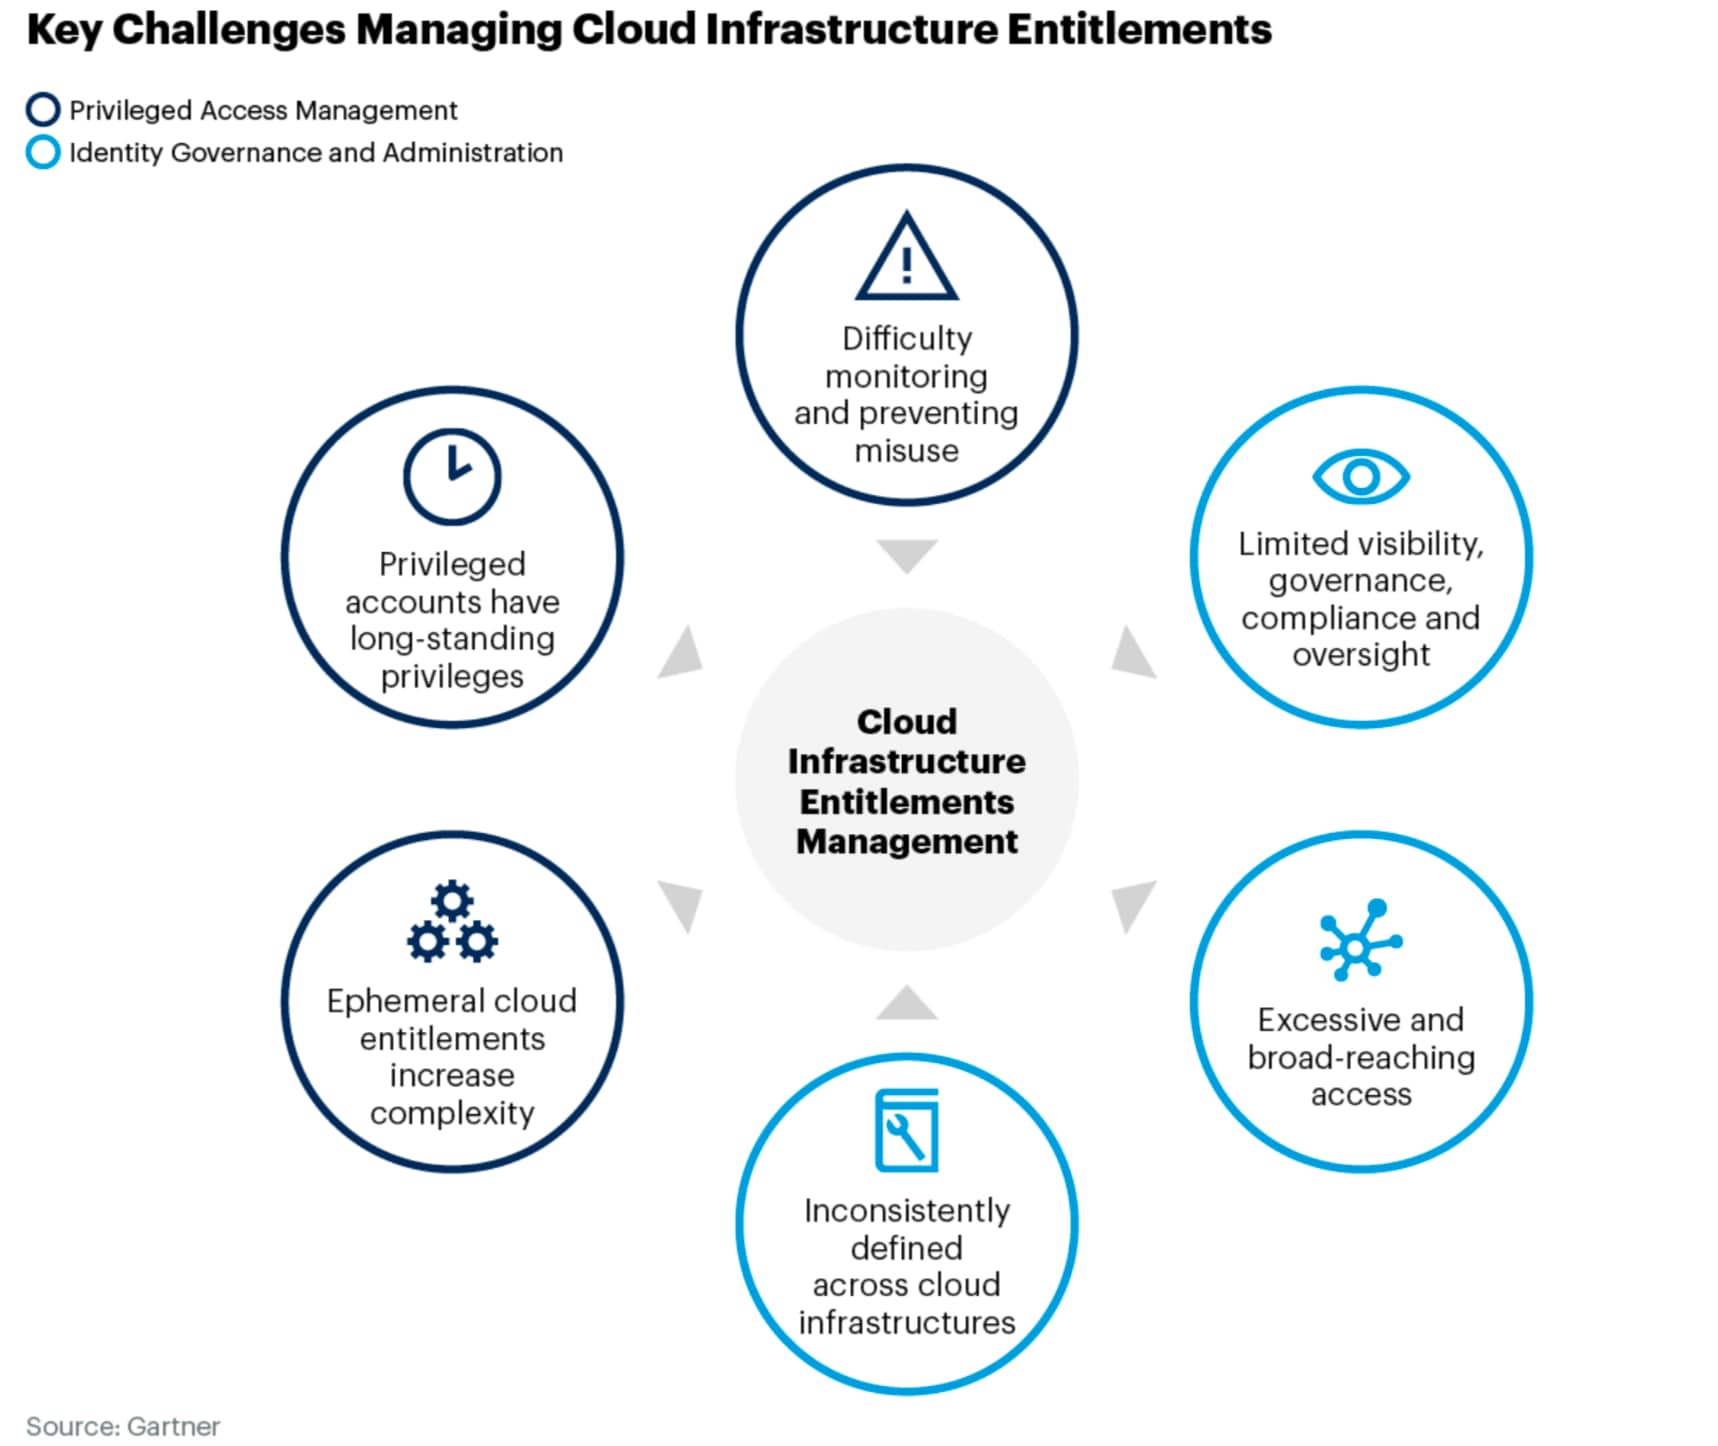 Key Challenges in Cloud Infrastructure Entitlement Management, marked dark blue for Privileged Access Management and light blue for Identity Governance and Administration.